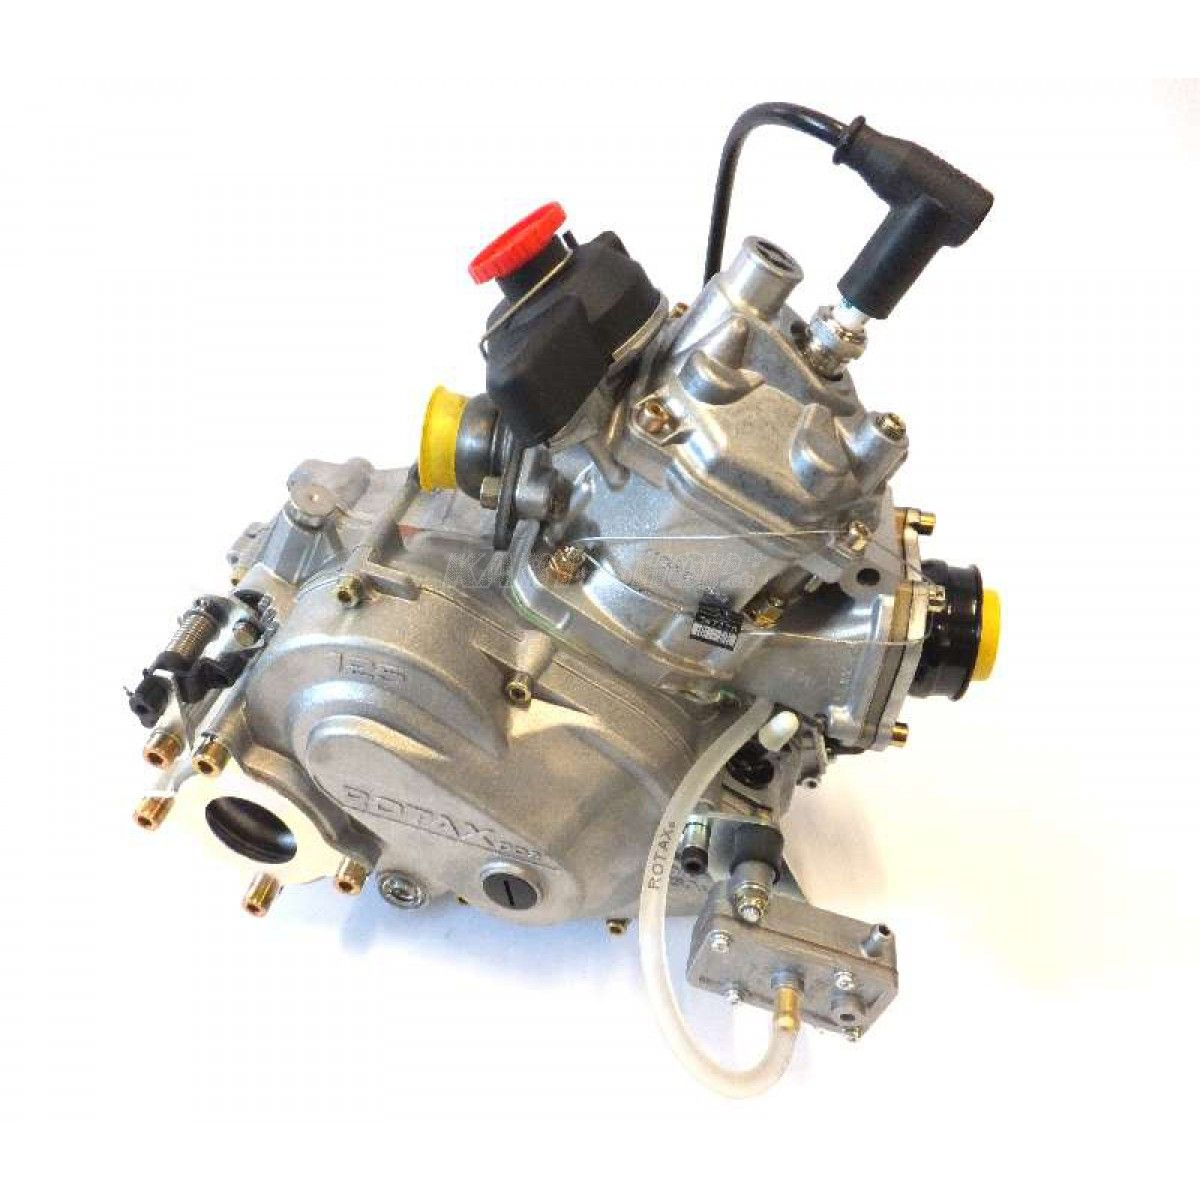 125cc Rotax DD2 Engine Specifications -- 2-stroke, 1 cylinder, Nikasil, Stroke: 54.5 mm x Bore: 54.00 mm;  Cooling System: Liquid cooling; Maximum speed: 14,000 rev / min Power: 24 kW / 32,6 hp at 11.750 1/min; Torque: 20 Nm at 10,500 1 / min; RPM: 13.800 1/min (limited); Weight: 16.8 kg; complete fuel mixture: 1:50 (2%) Noise: max. 88 db; Maintenance interval: 50 hours; Equipment: centrifugal clutch electric starter; Integrated Water Pump; Integrated thermostat